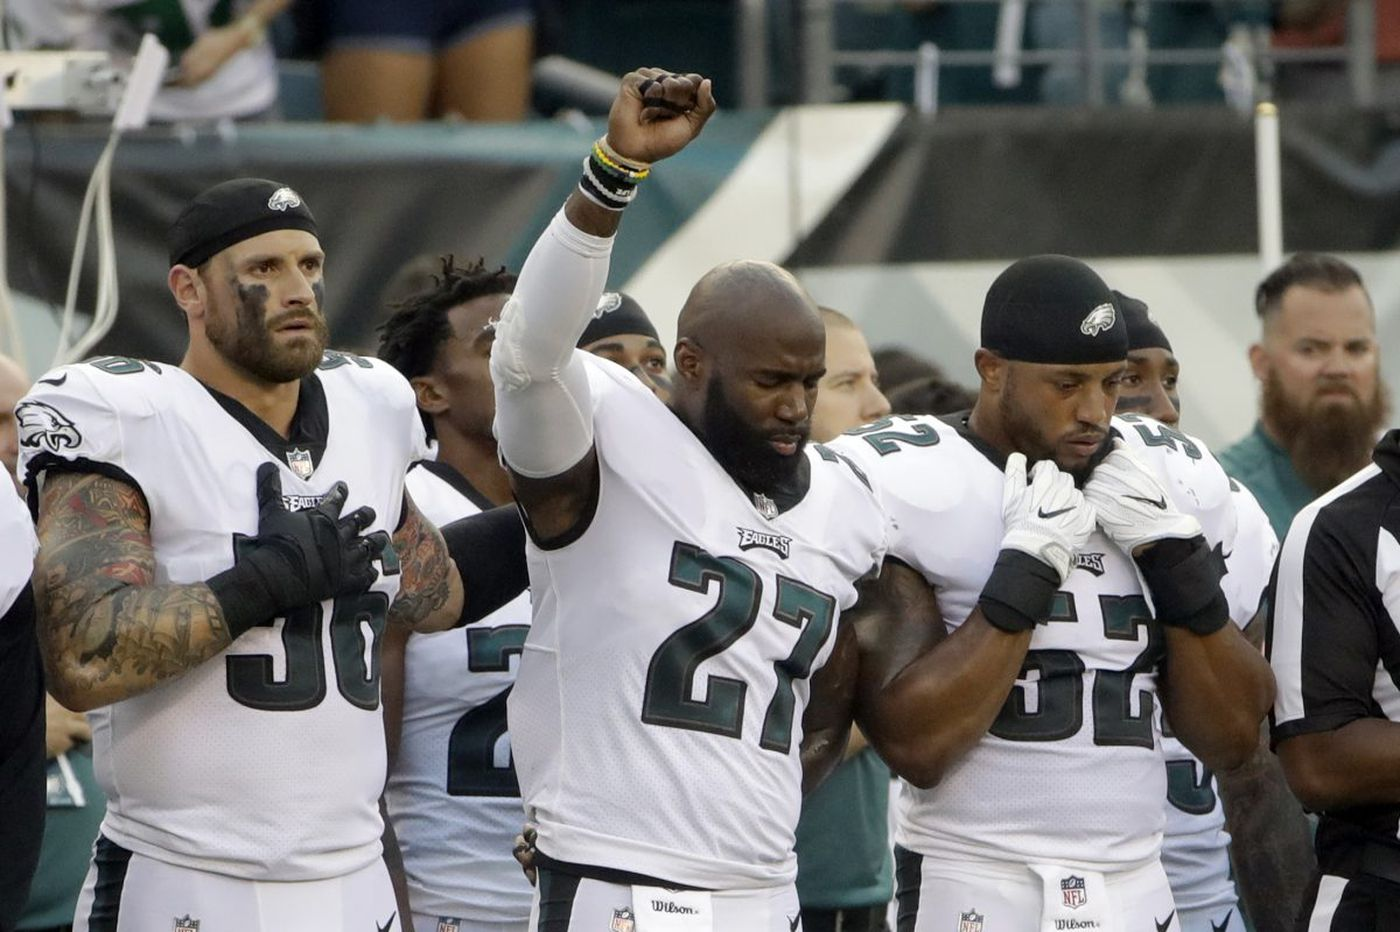 Eagles' Chris Long wraps arm around Malcolm Jenkins during national anthem: 'Good time for people that look like me' to fight for equality